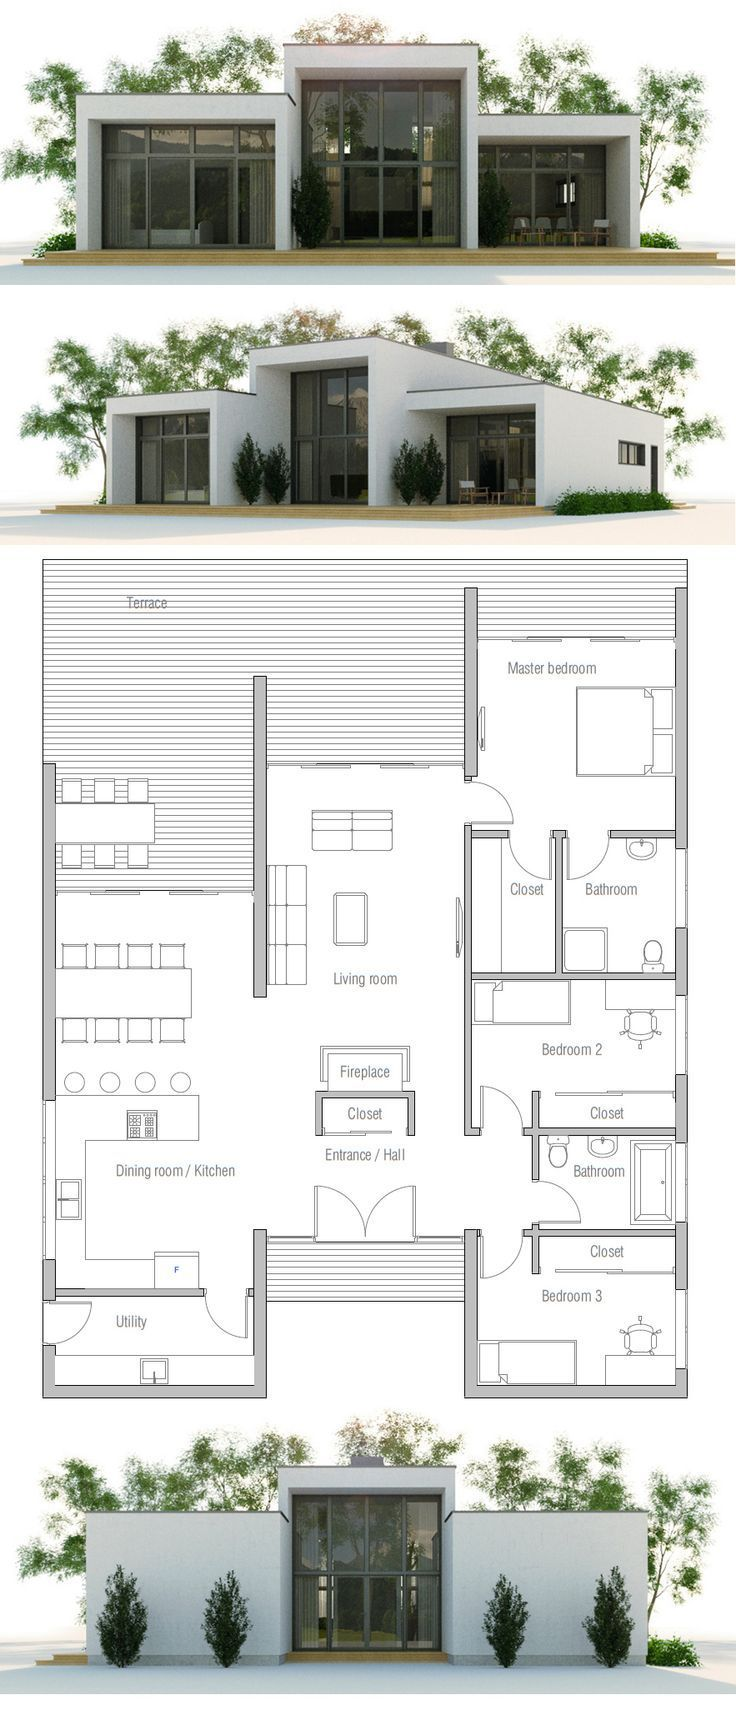 3 Bedroom Beach House Plan Amazing living room list of things raleigh kitchen cabinetsraleigh